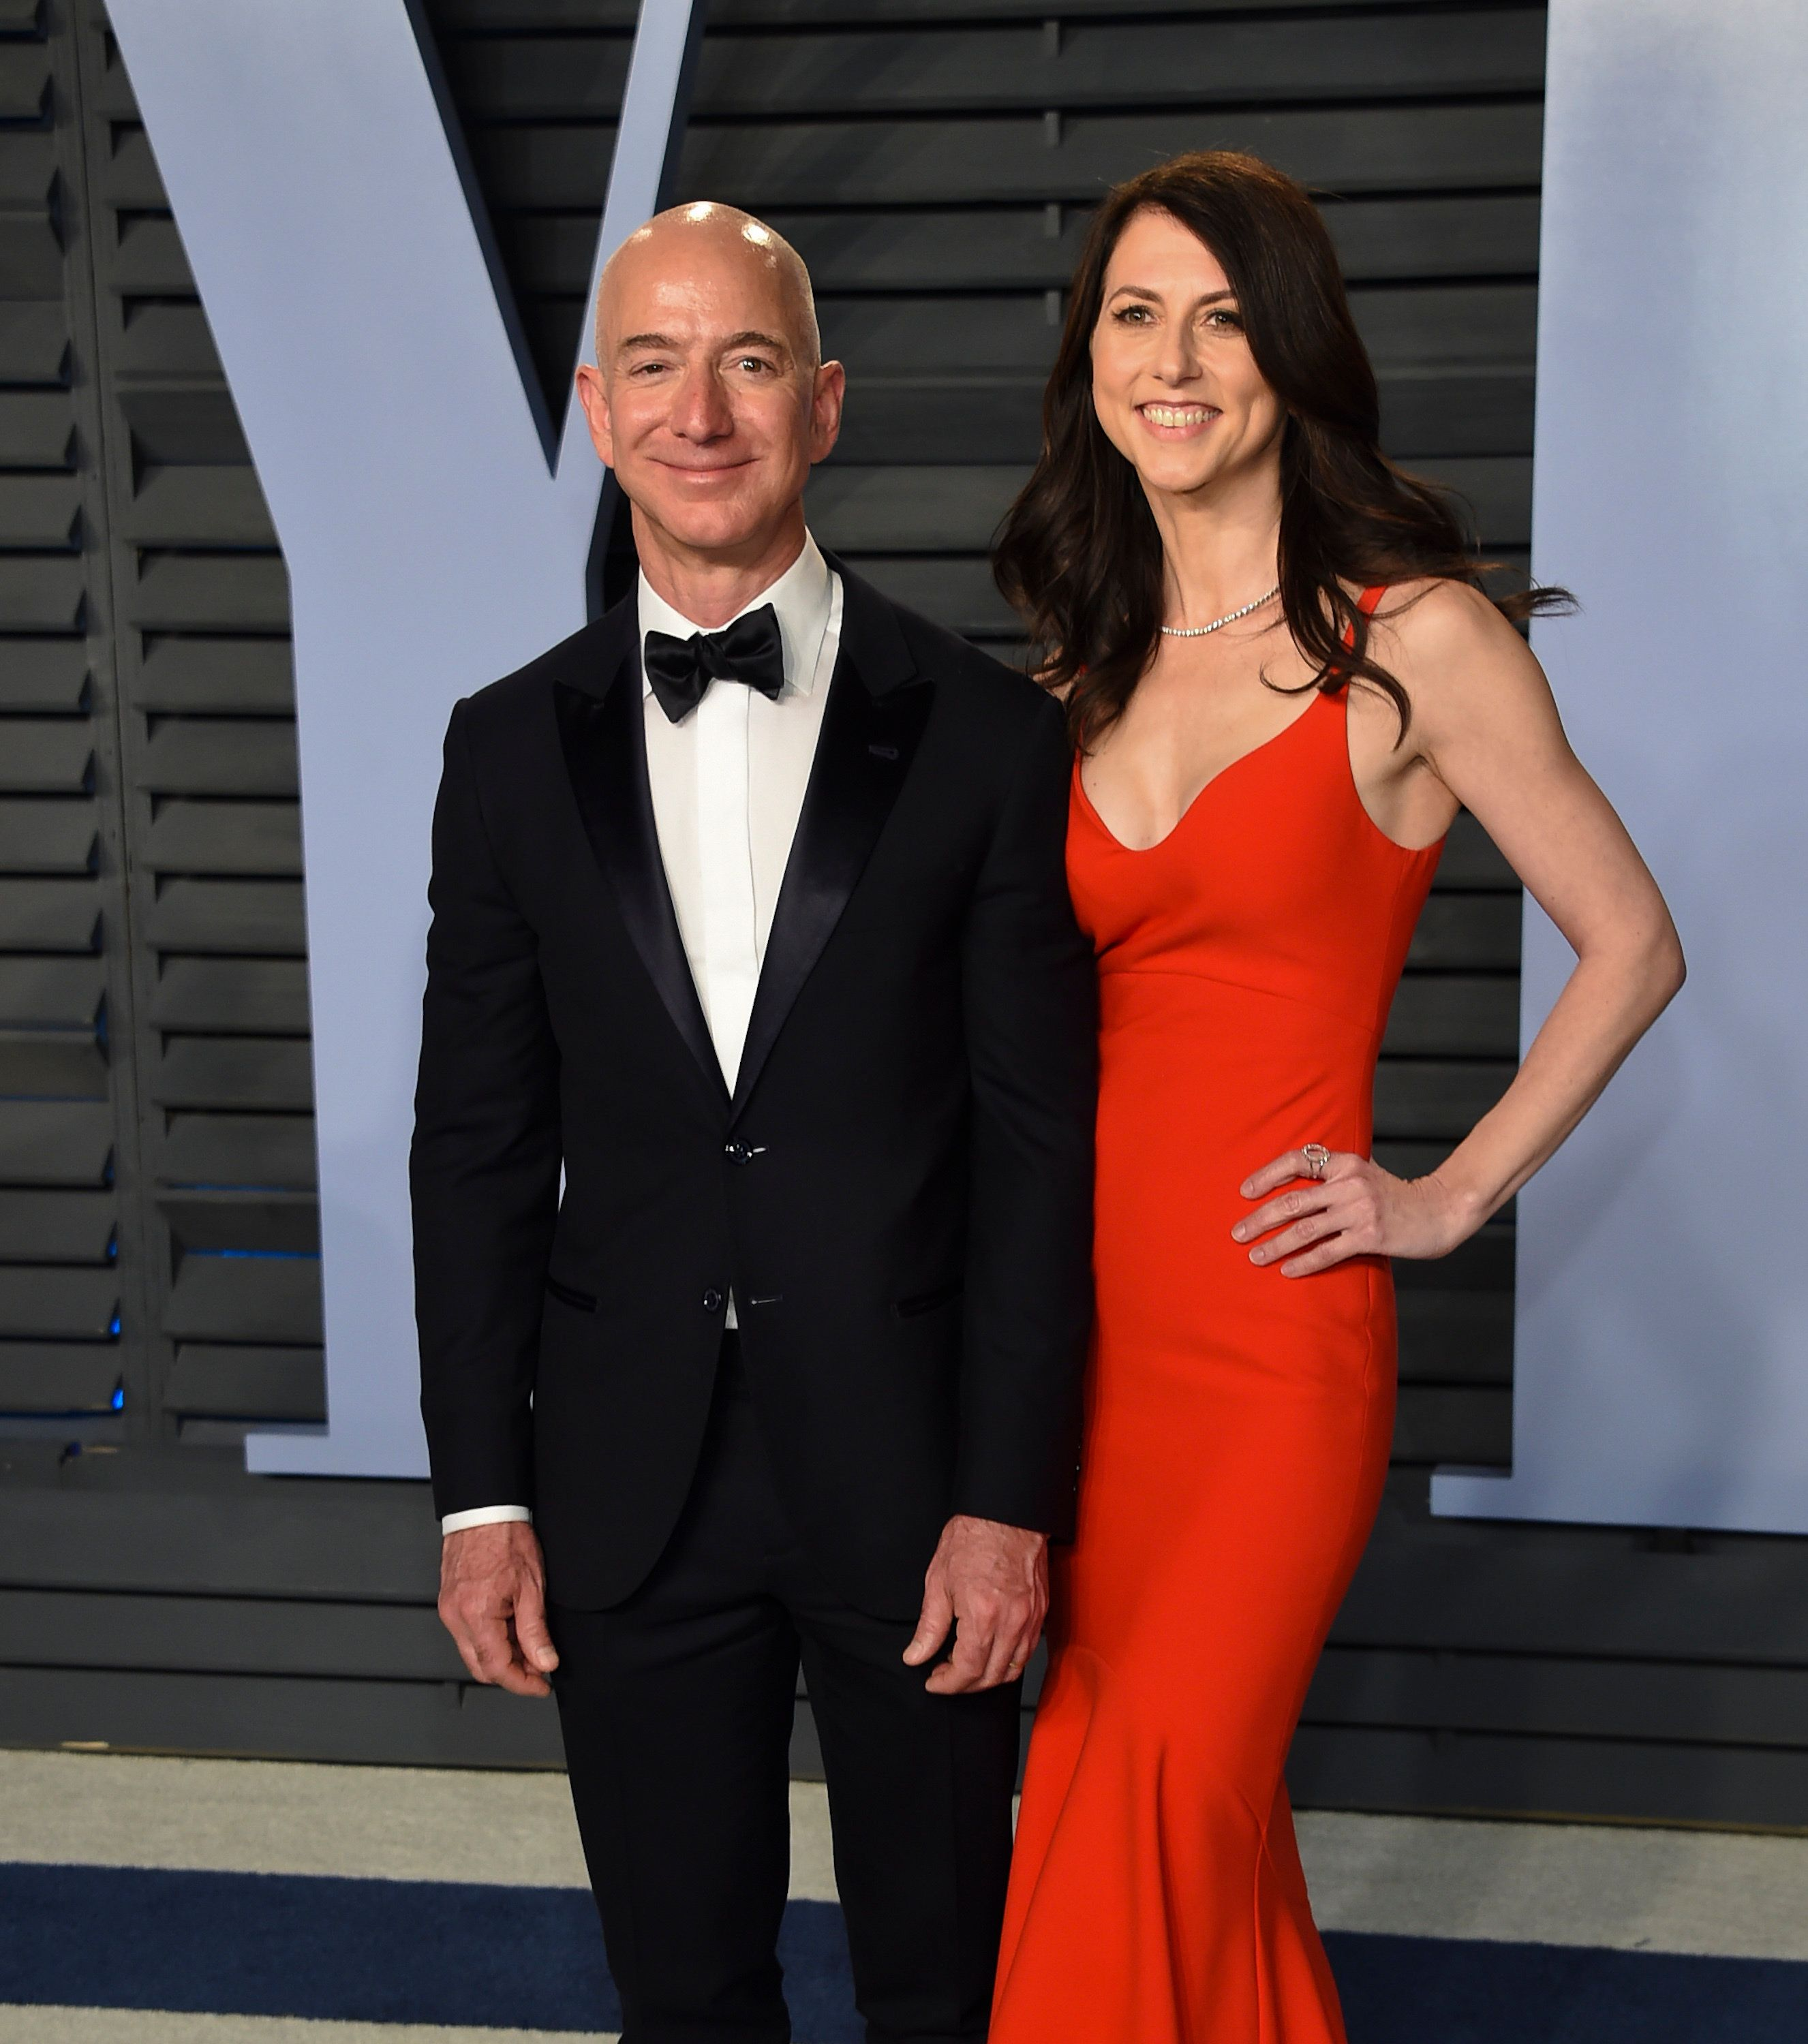 Jeff and MacKenzie Bezos announce they are getting a divorce class=